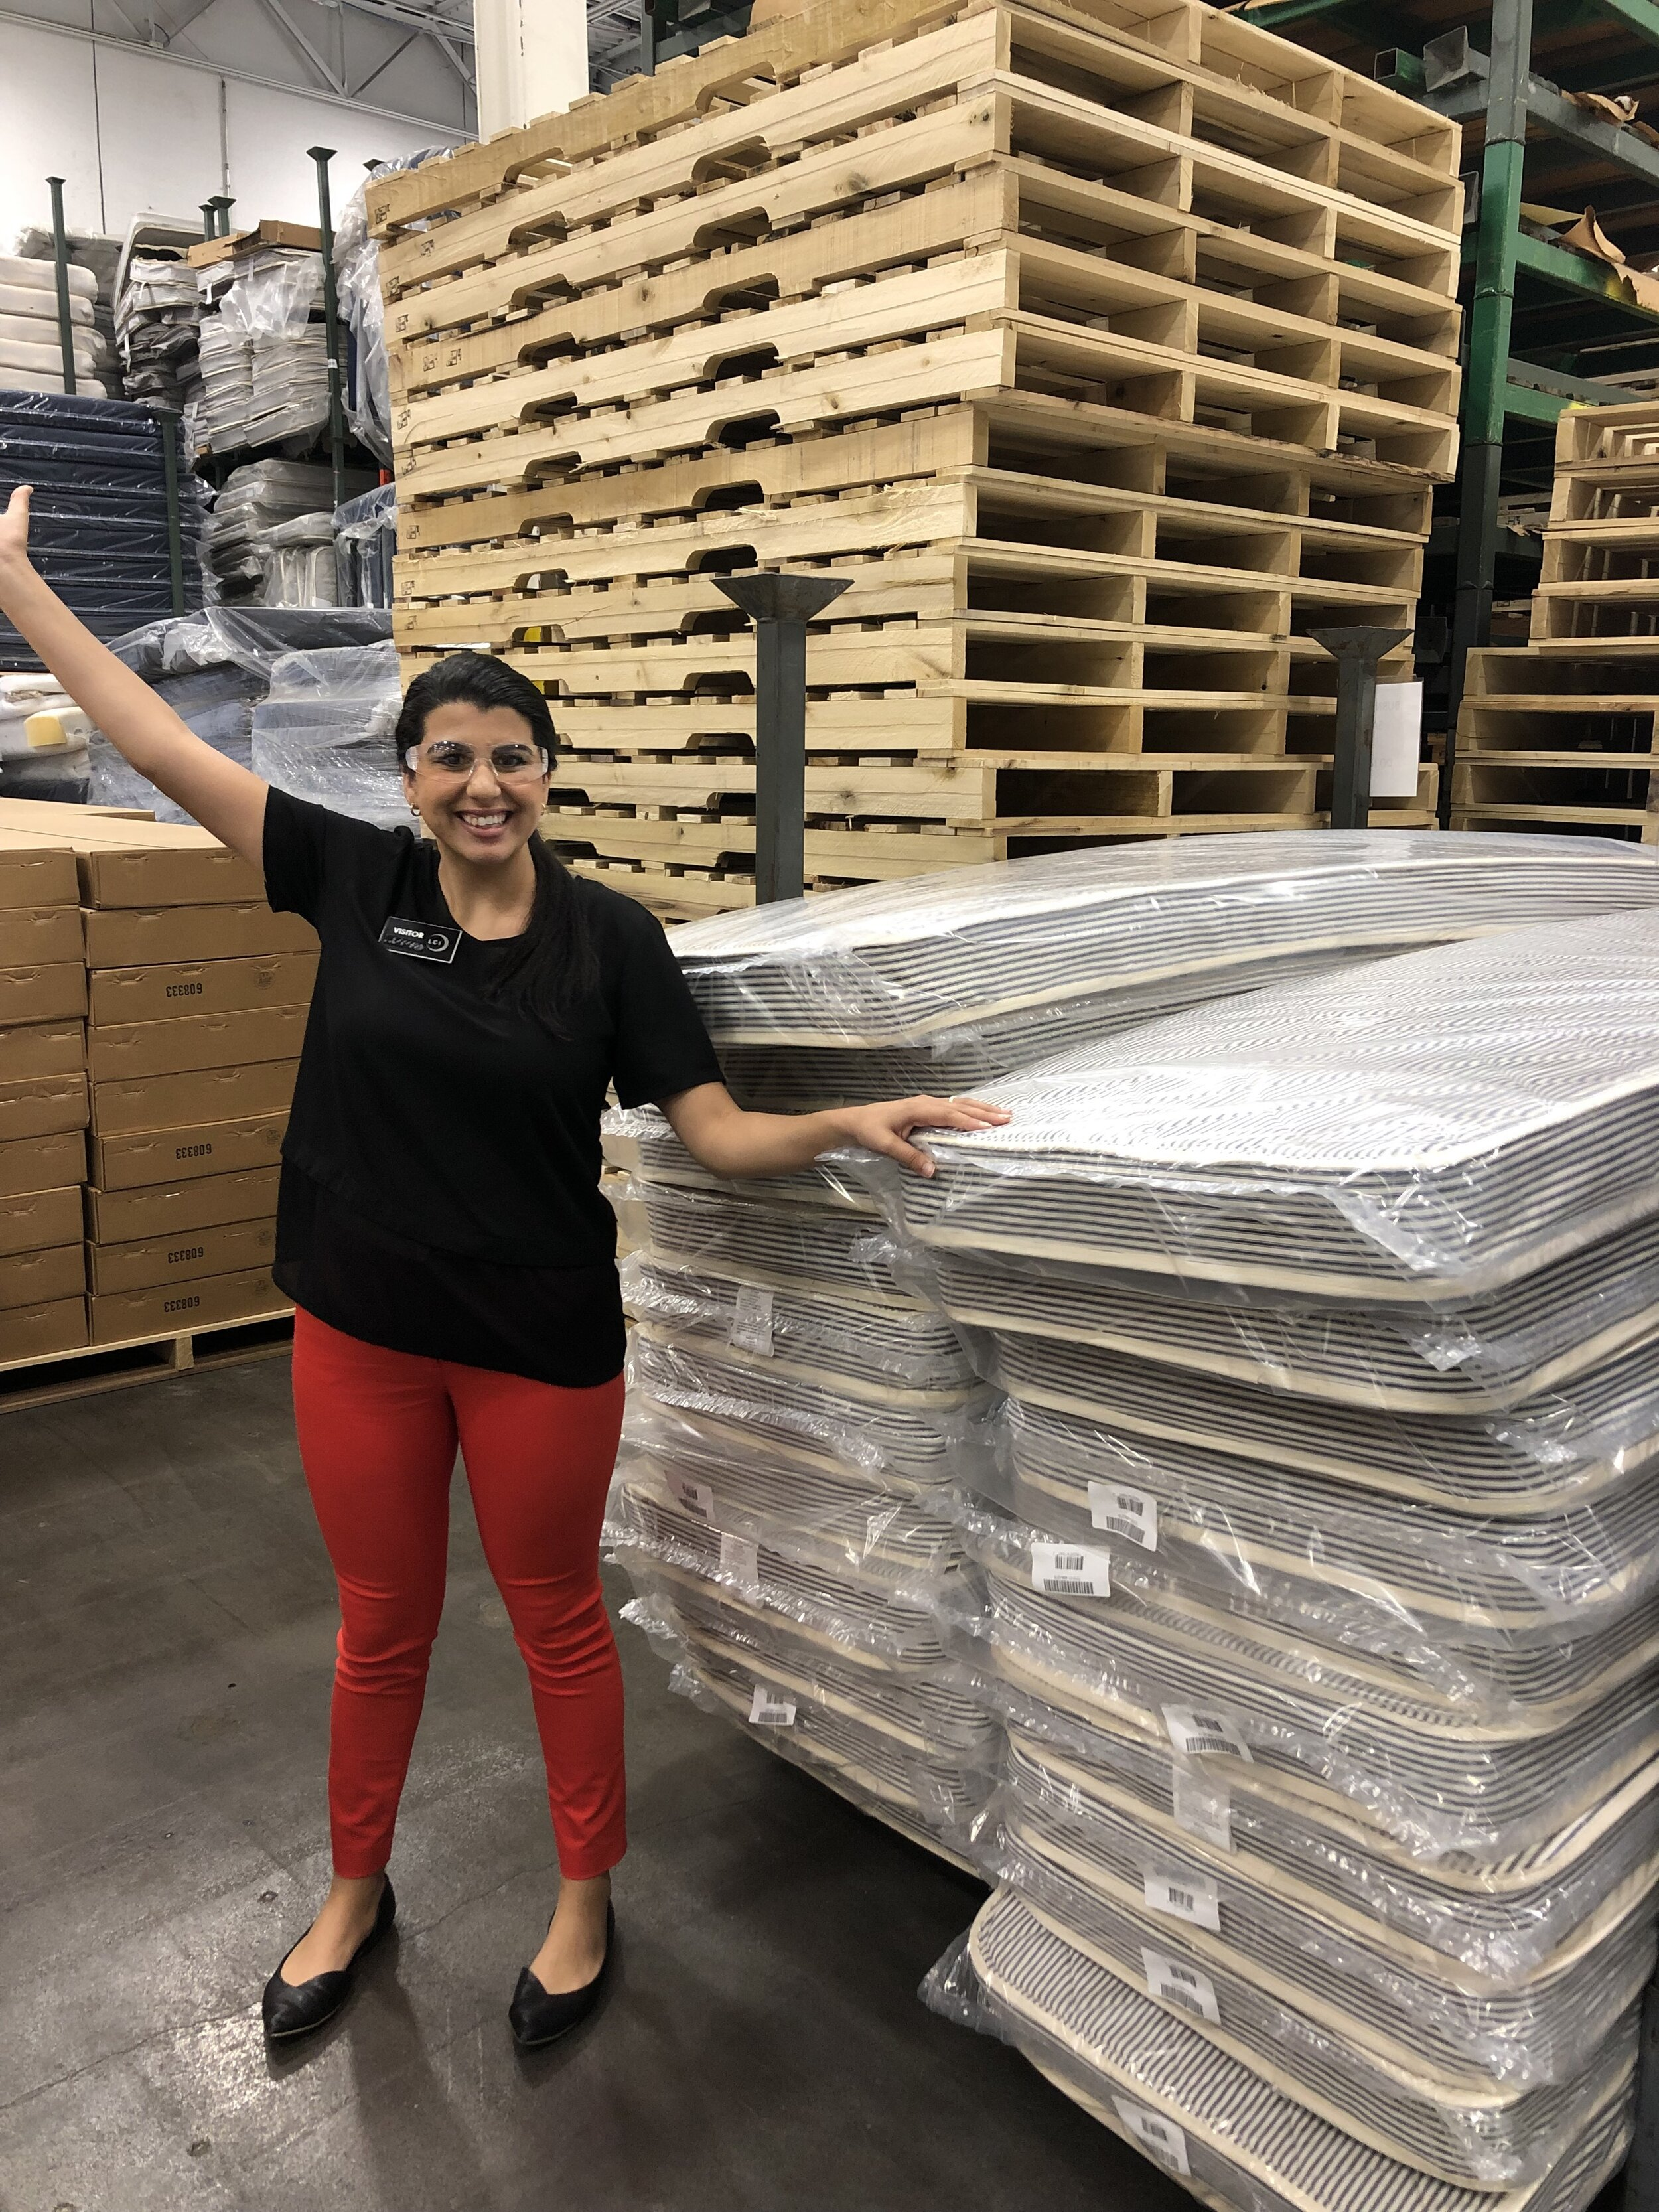 Manufacturing is where LCI started, and remains a core part of our identity. We manufacture products ranging from mattresses and file folders to chemical lightsticks. Our portfolio comprises over 2,000 unique products, supported by six facilities with over 750,000 square feet of space. All of it is dedicated to employing and empowering people who are blind.